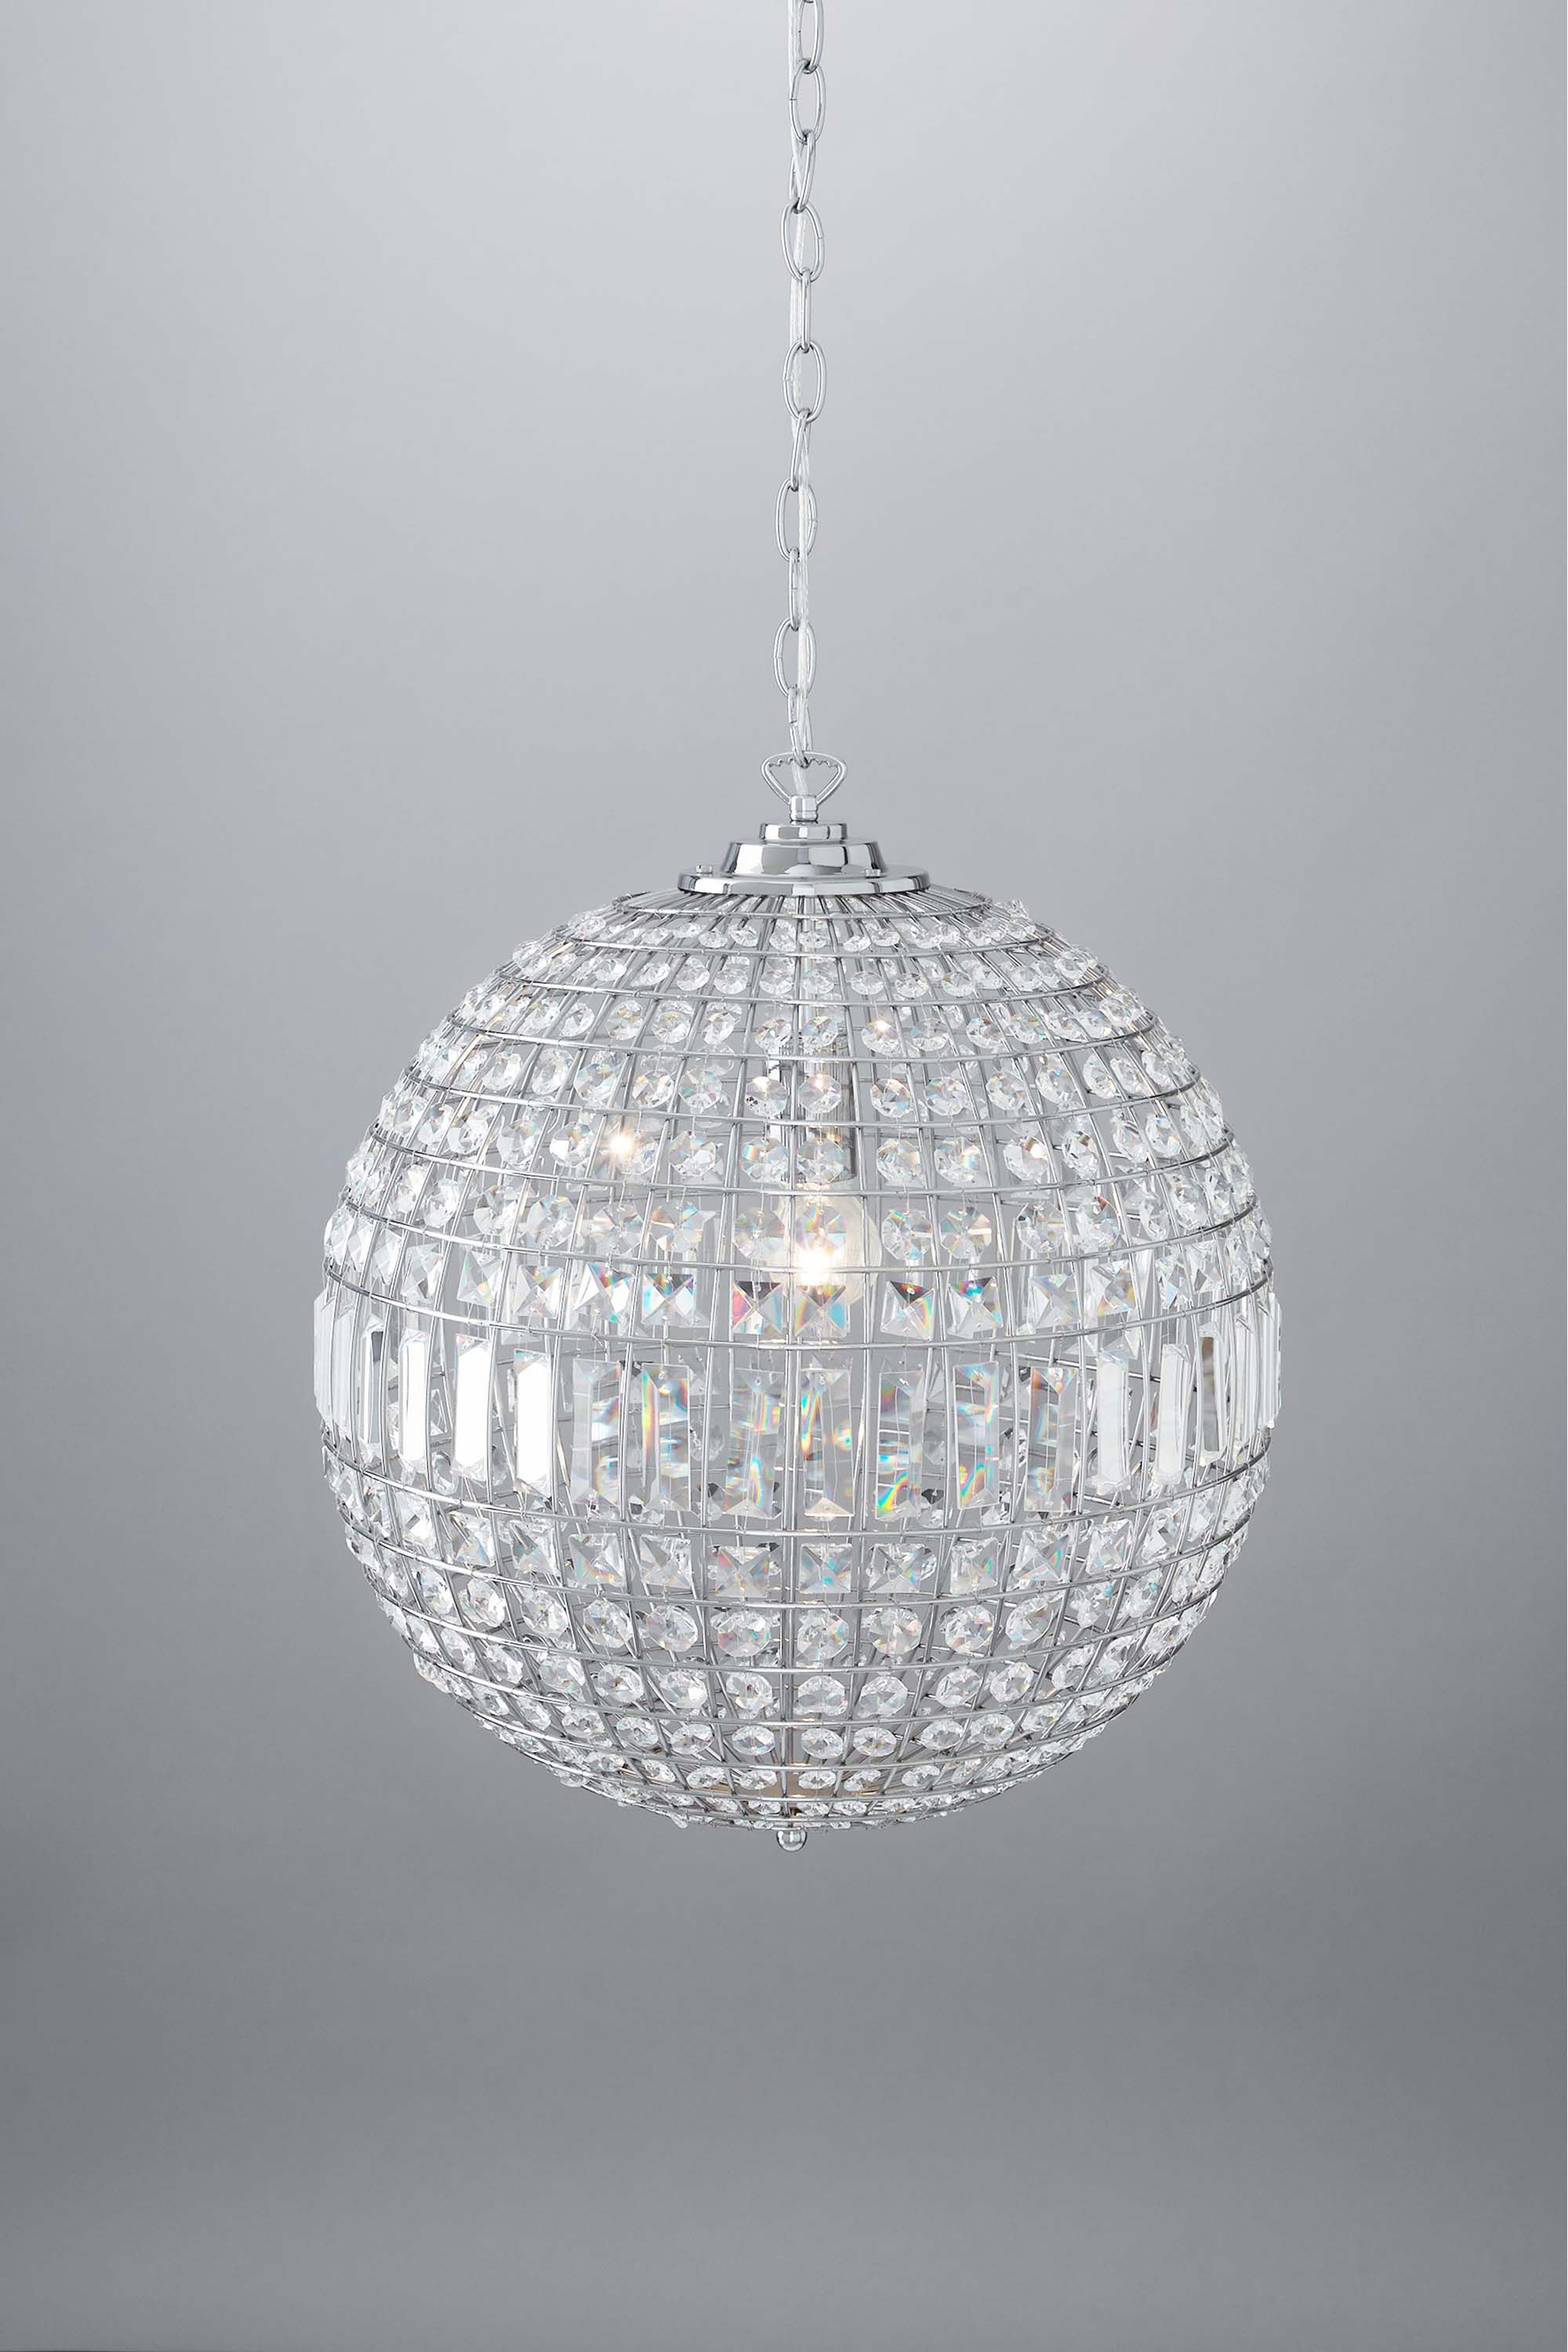 ball robe crystal almond pendant p light asp